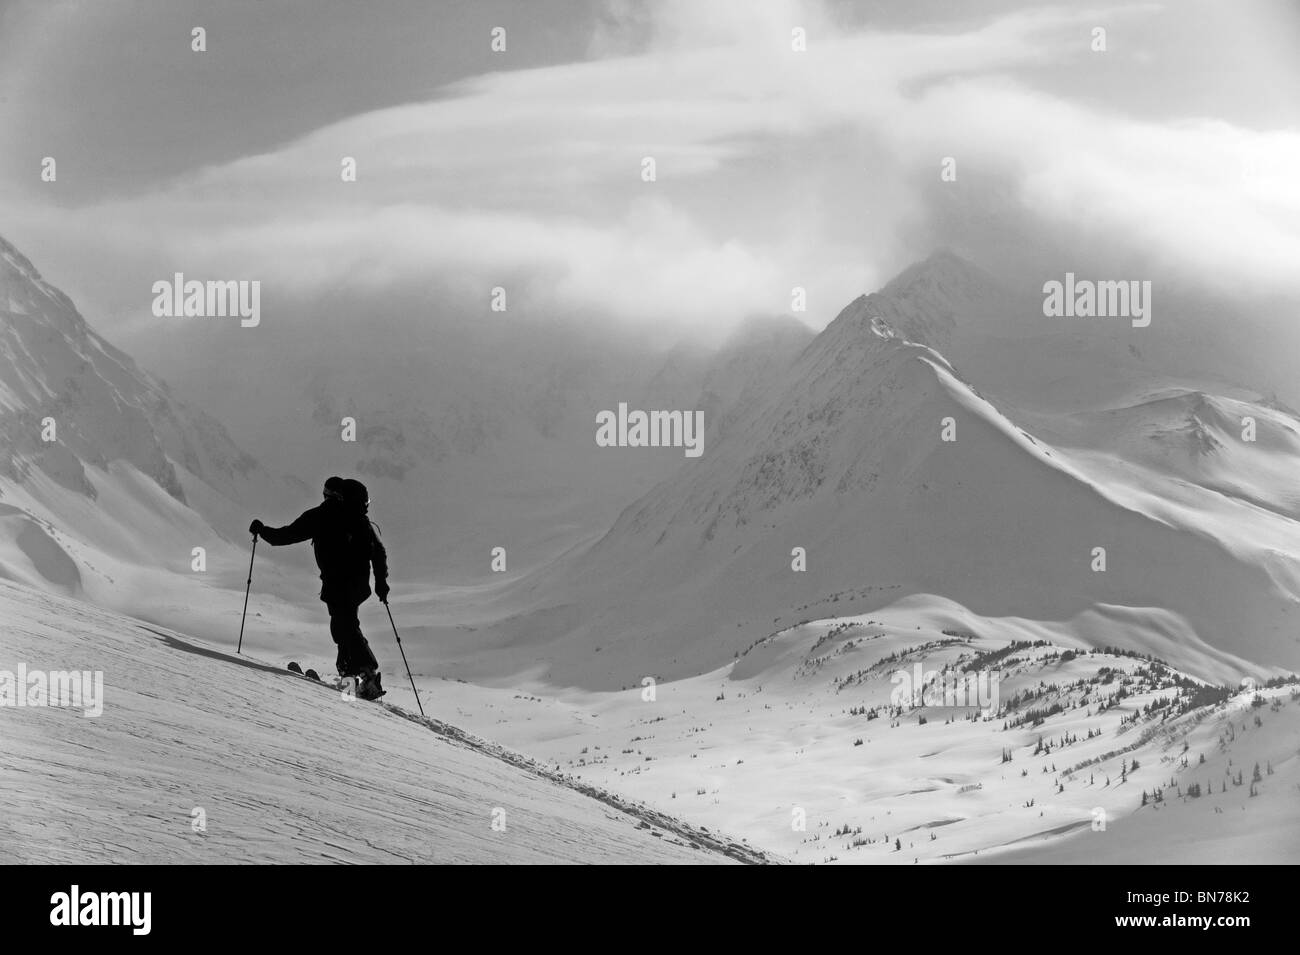 A backcountry skier skinning uphill in Turnagain Pass, Alaska - Stock Image